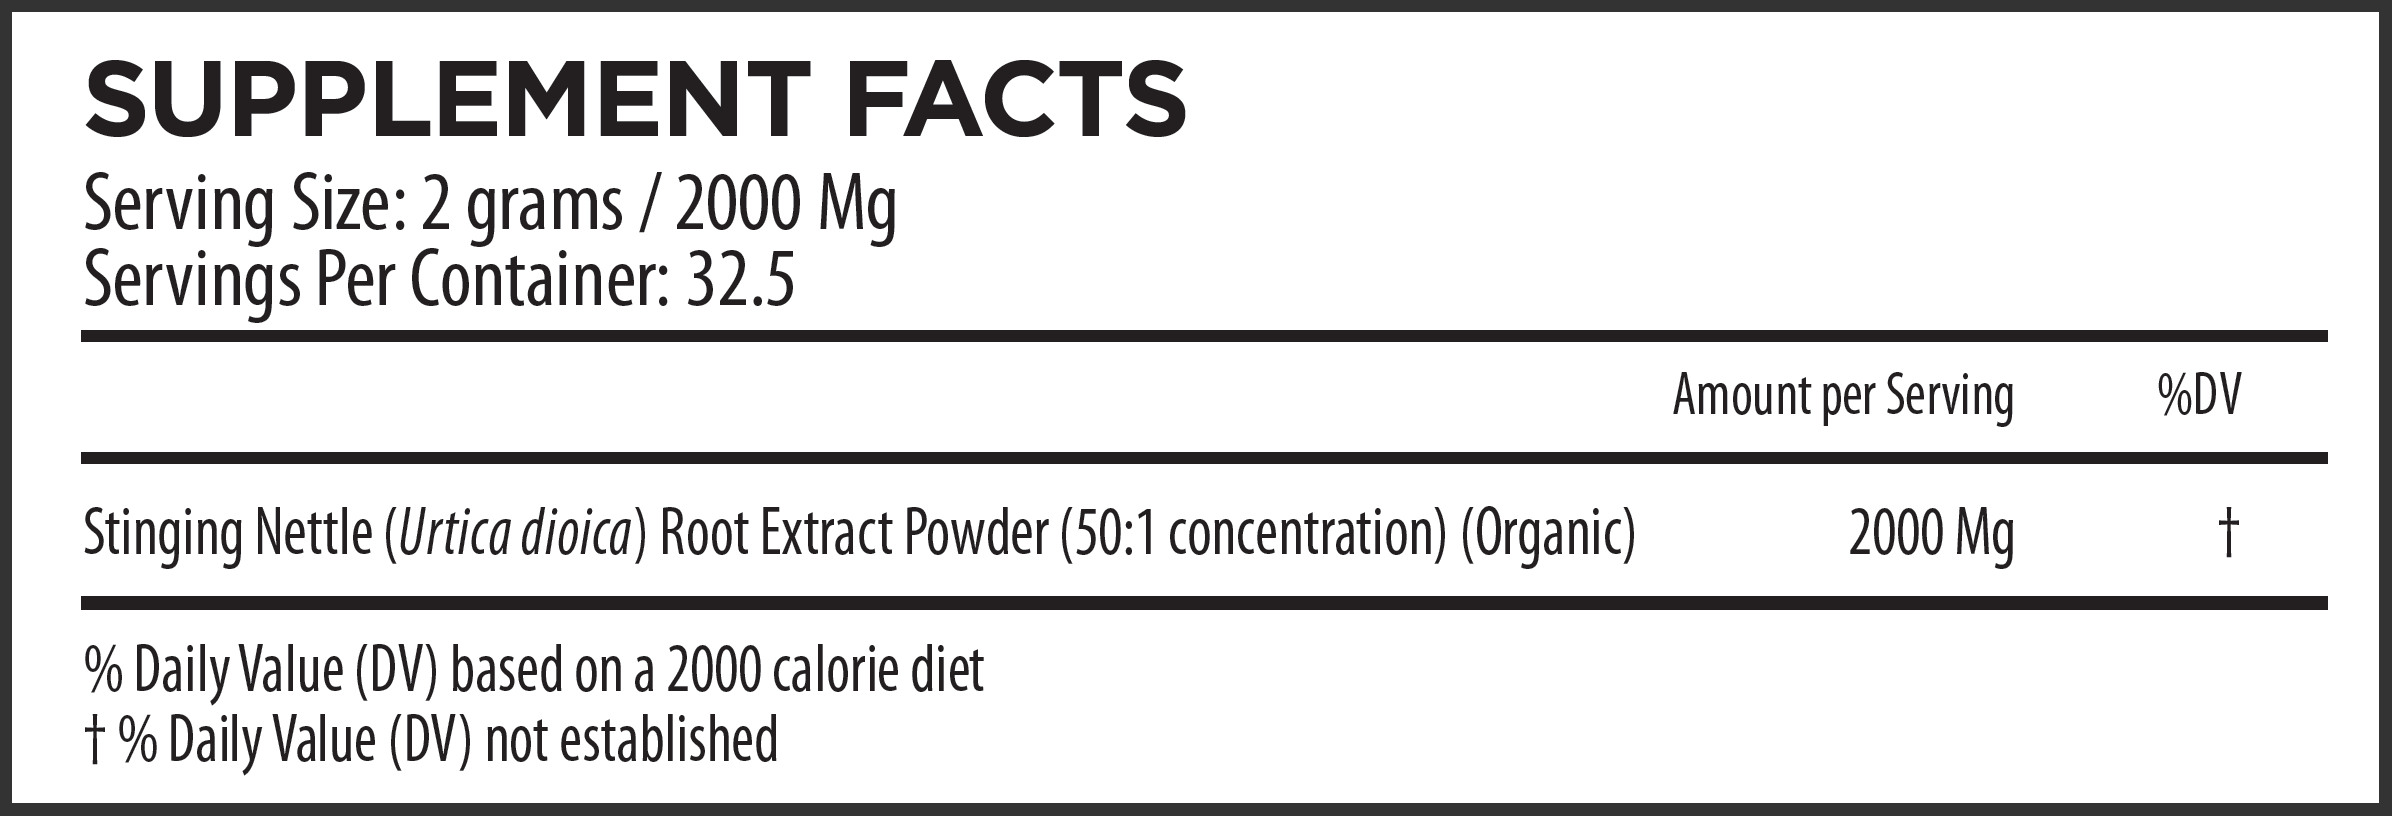 Stinging Nettle Root Extract Supplement Fact